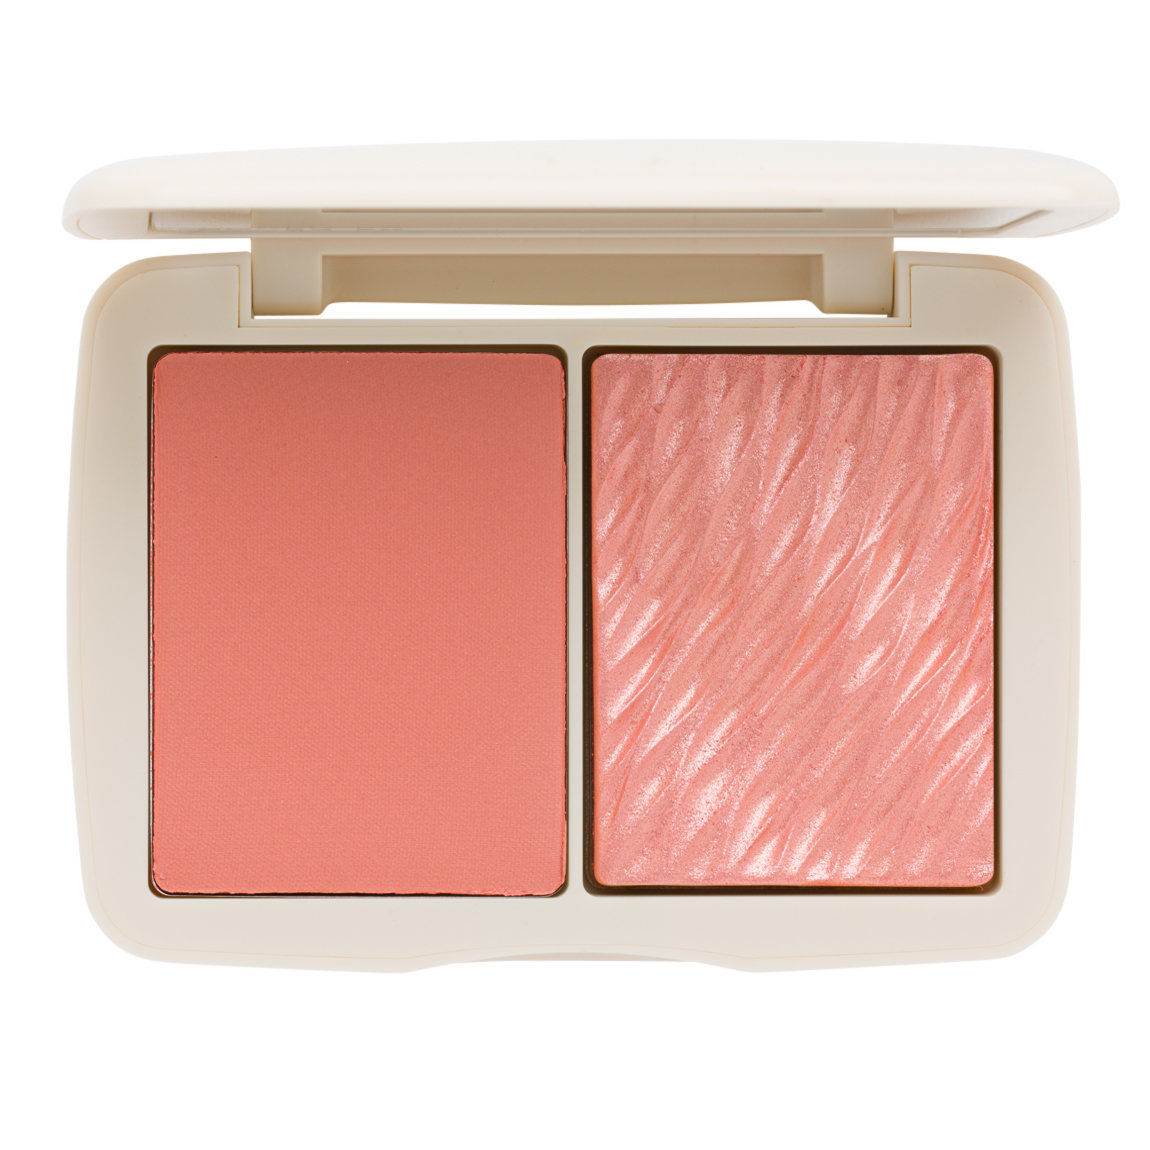 COVER | FX Monochromatic Blush Duo Pink Dahlia product smear.